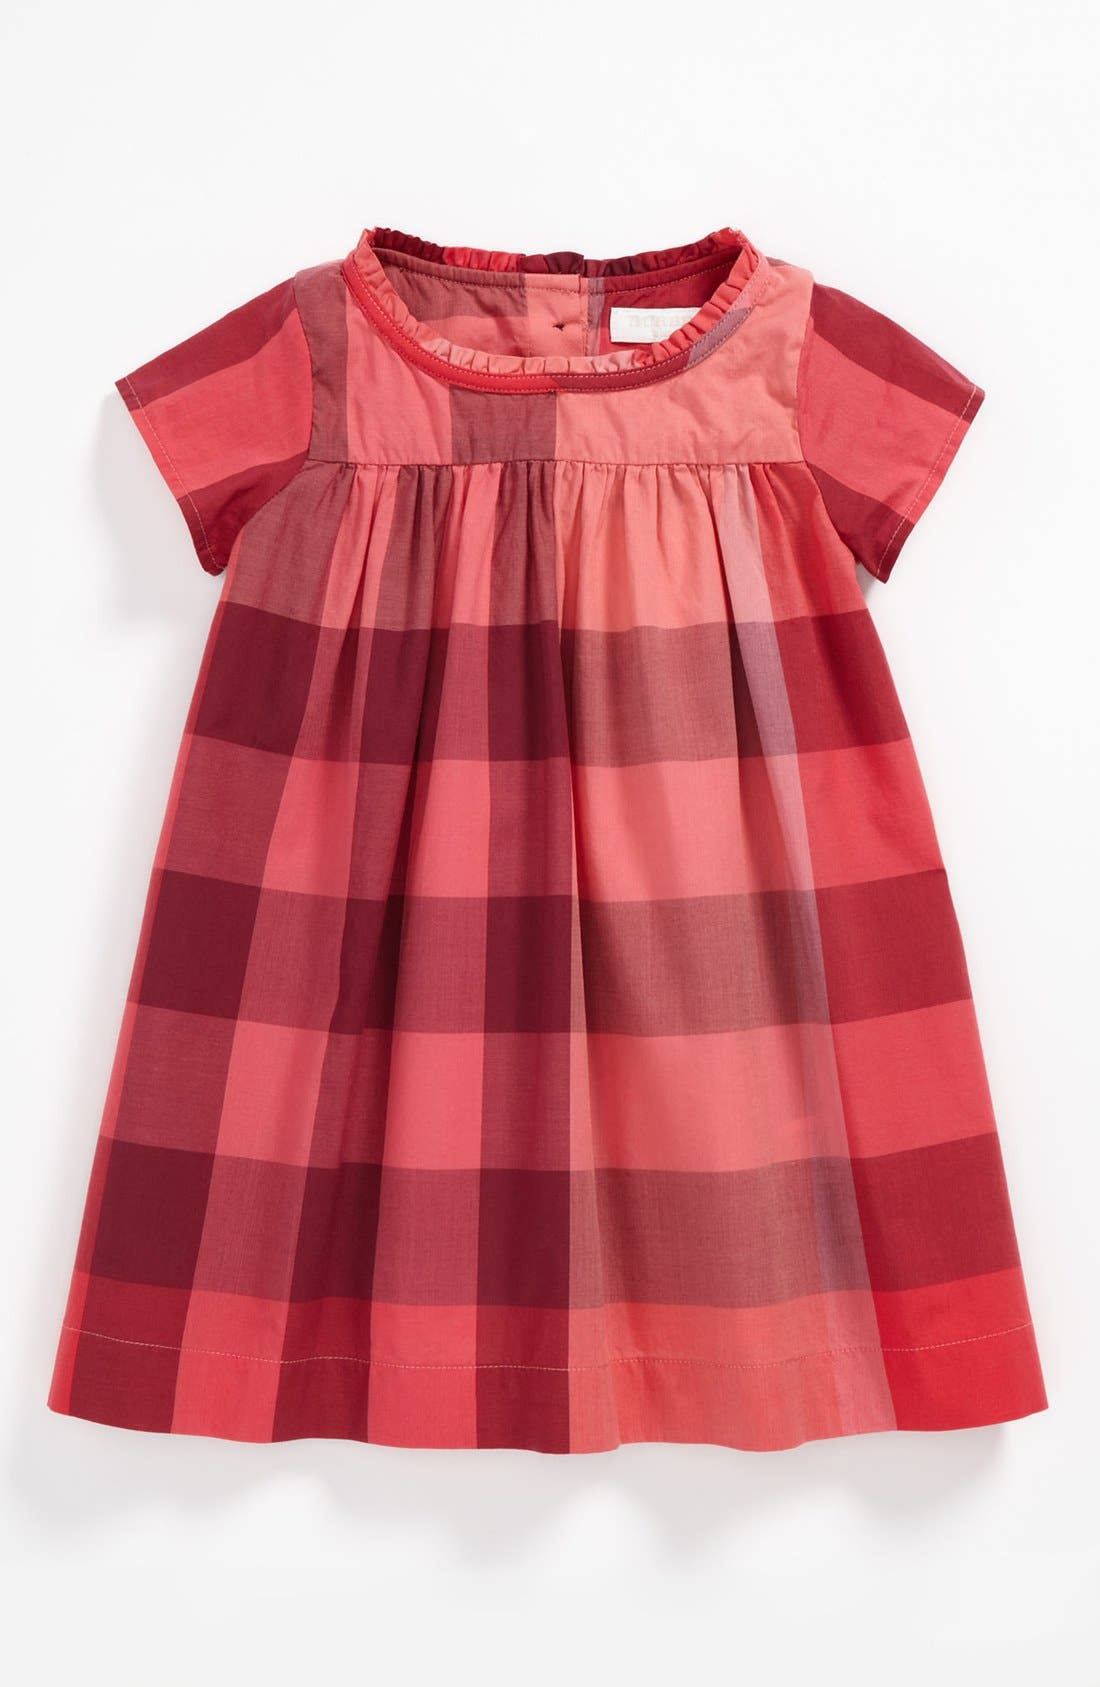 Alternate Image 1 Selected - Burberry 'Delia' Dress (Baby)